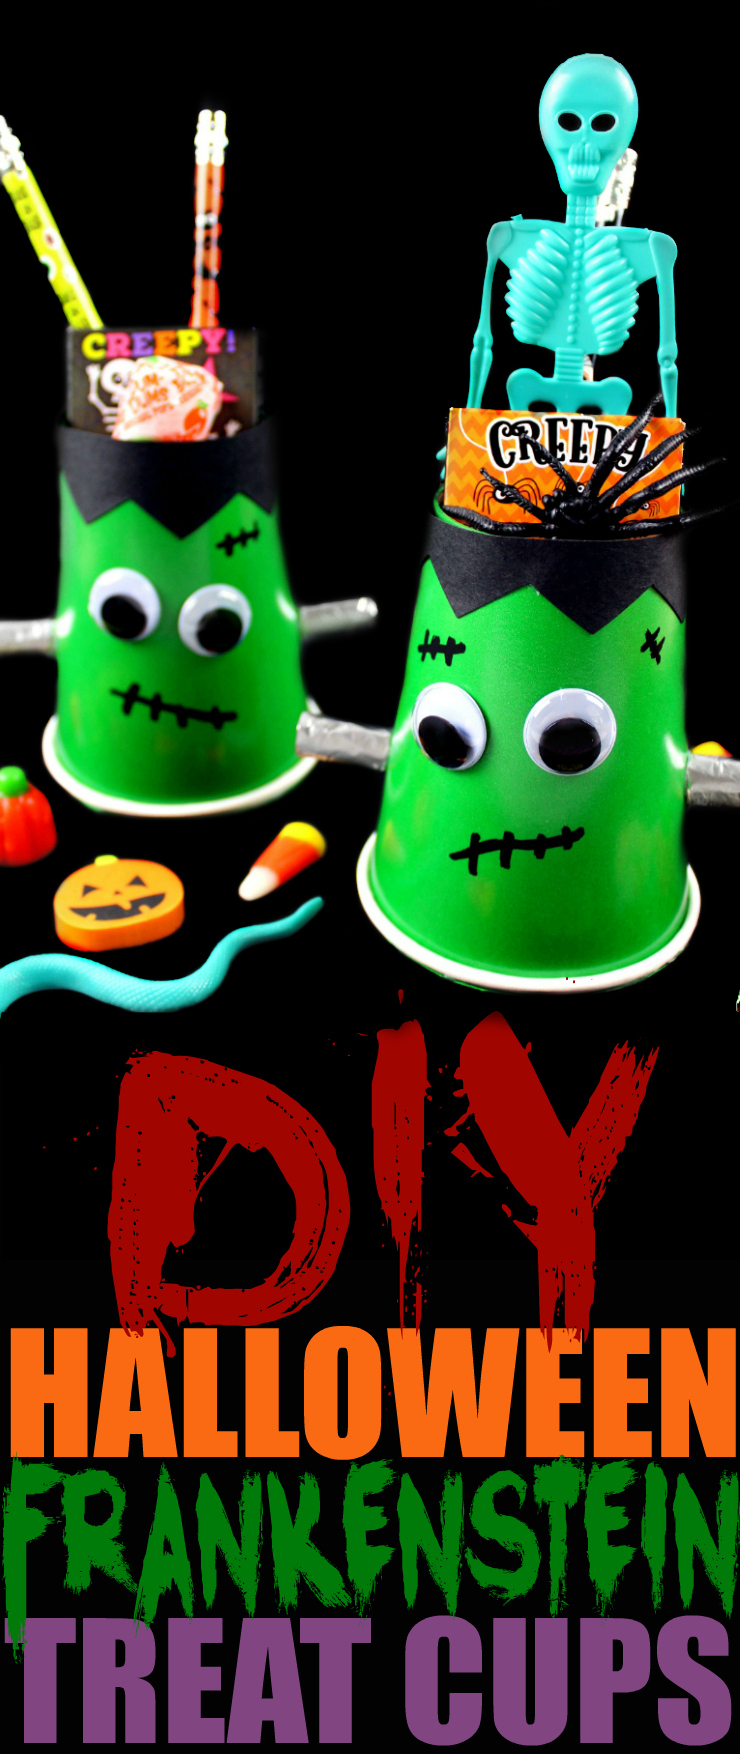 Make these DIY Halloween Frankenstein Treat Cups. Perfect for your Halloween party candy station or to limit the kids candy intake after trick-or-treating.